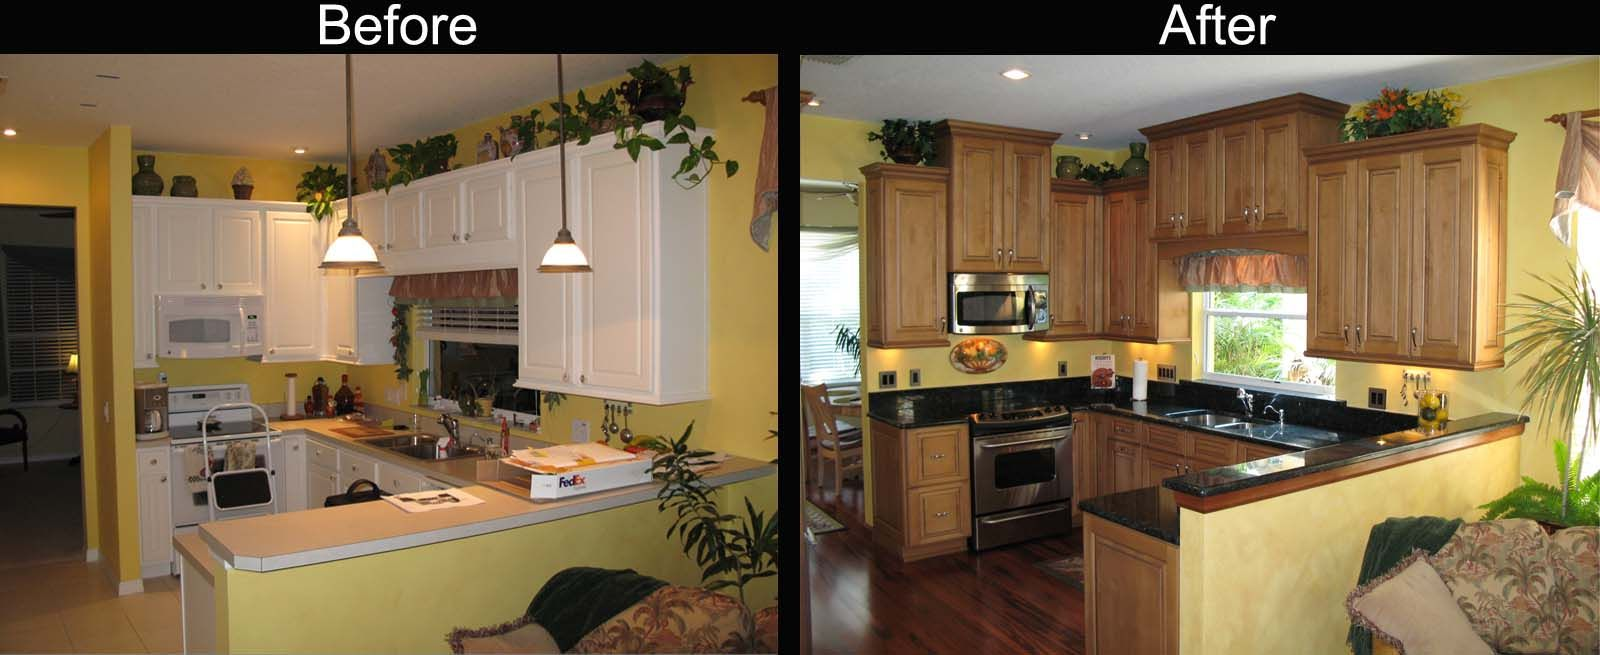 Kitchen Renovation Before And After painted cabinets before and after: ideas for your kitchen